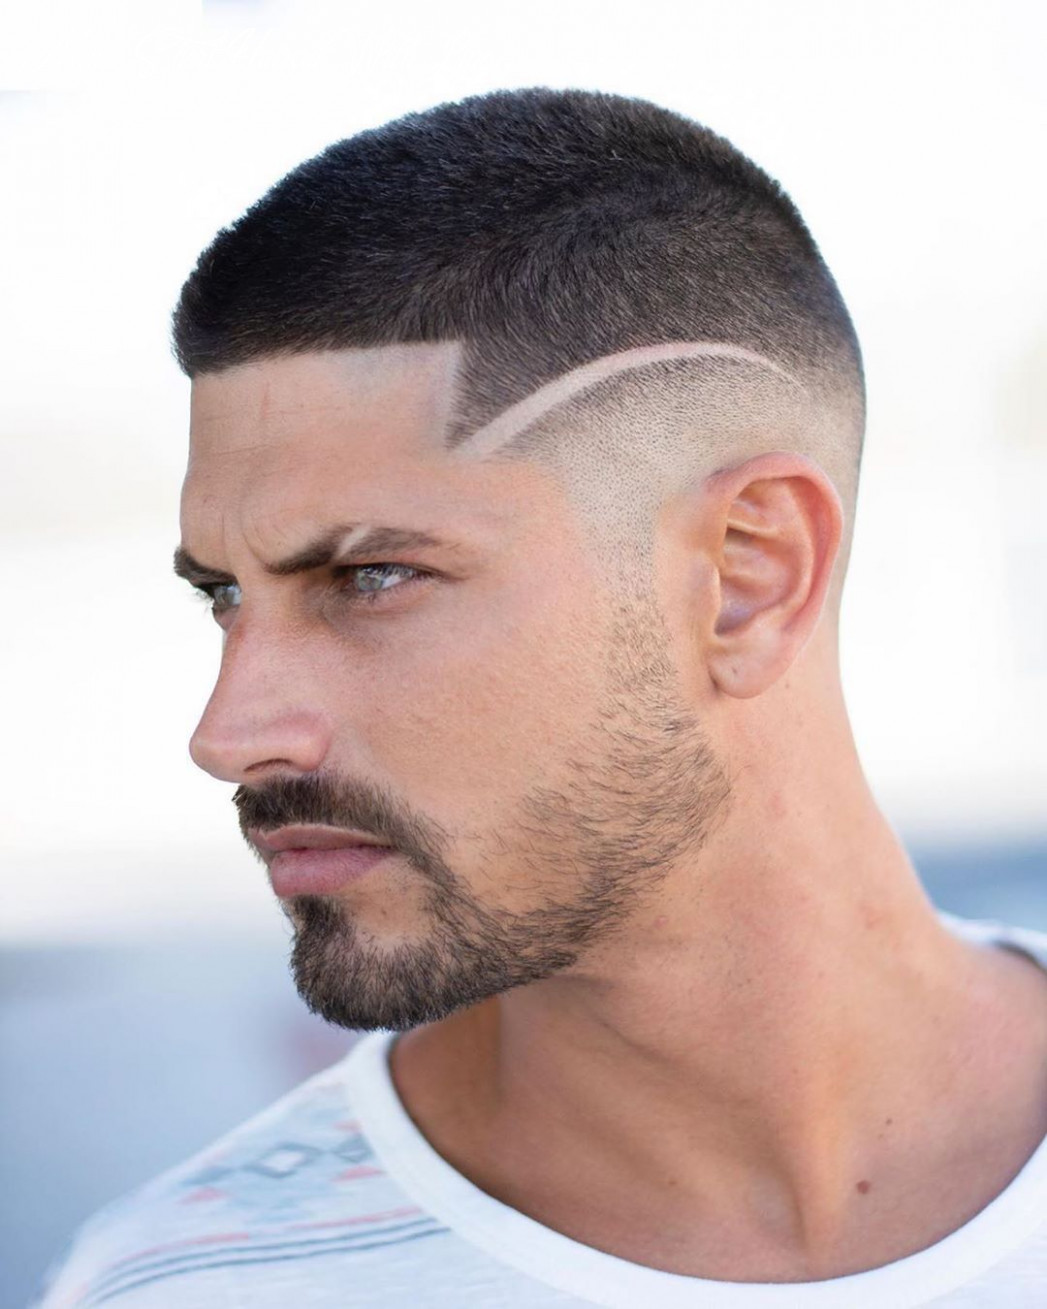 Short Haircuts For Men for Trend 11 | Hera Hair Beauty